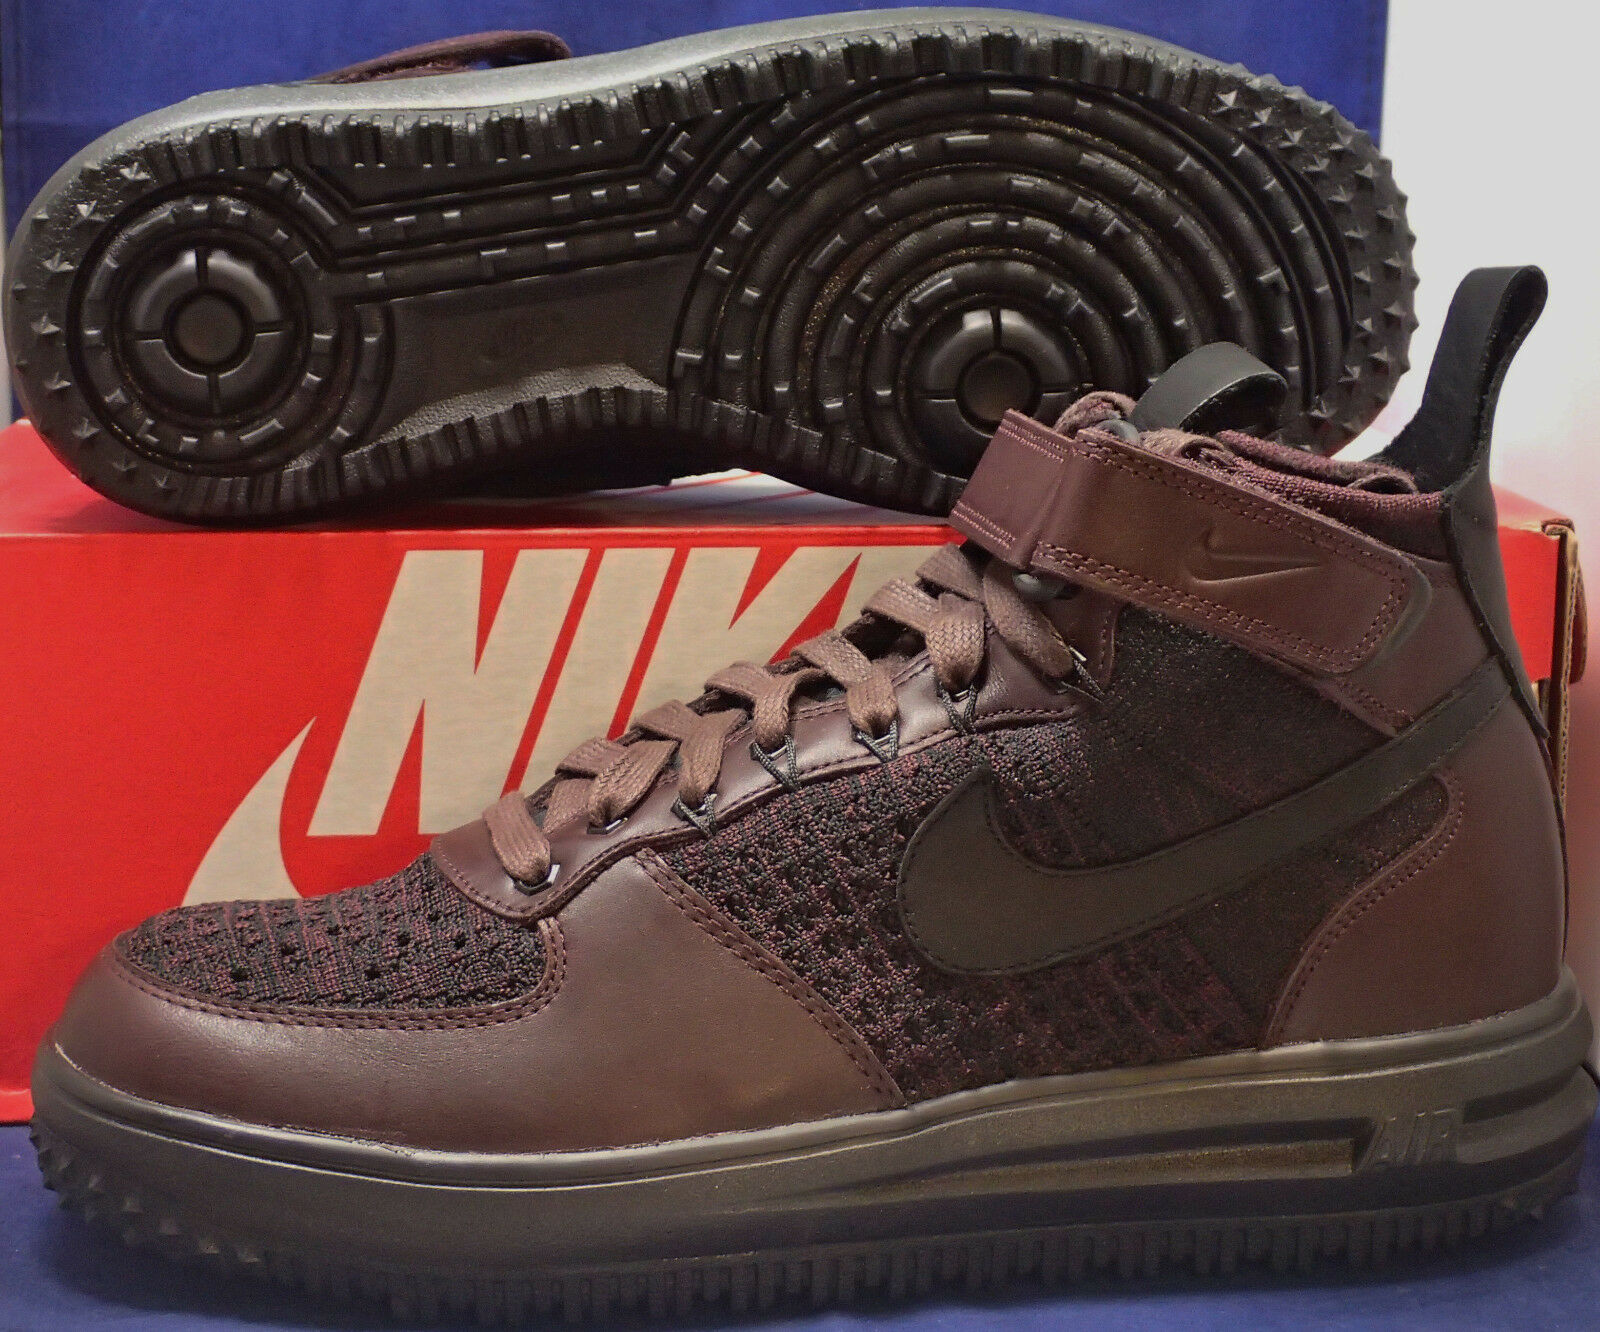 Nike Lunar Force 1 Flyknit Workboot Deep Burgundy Black Price reduction Seasonal clearance sale